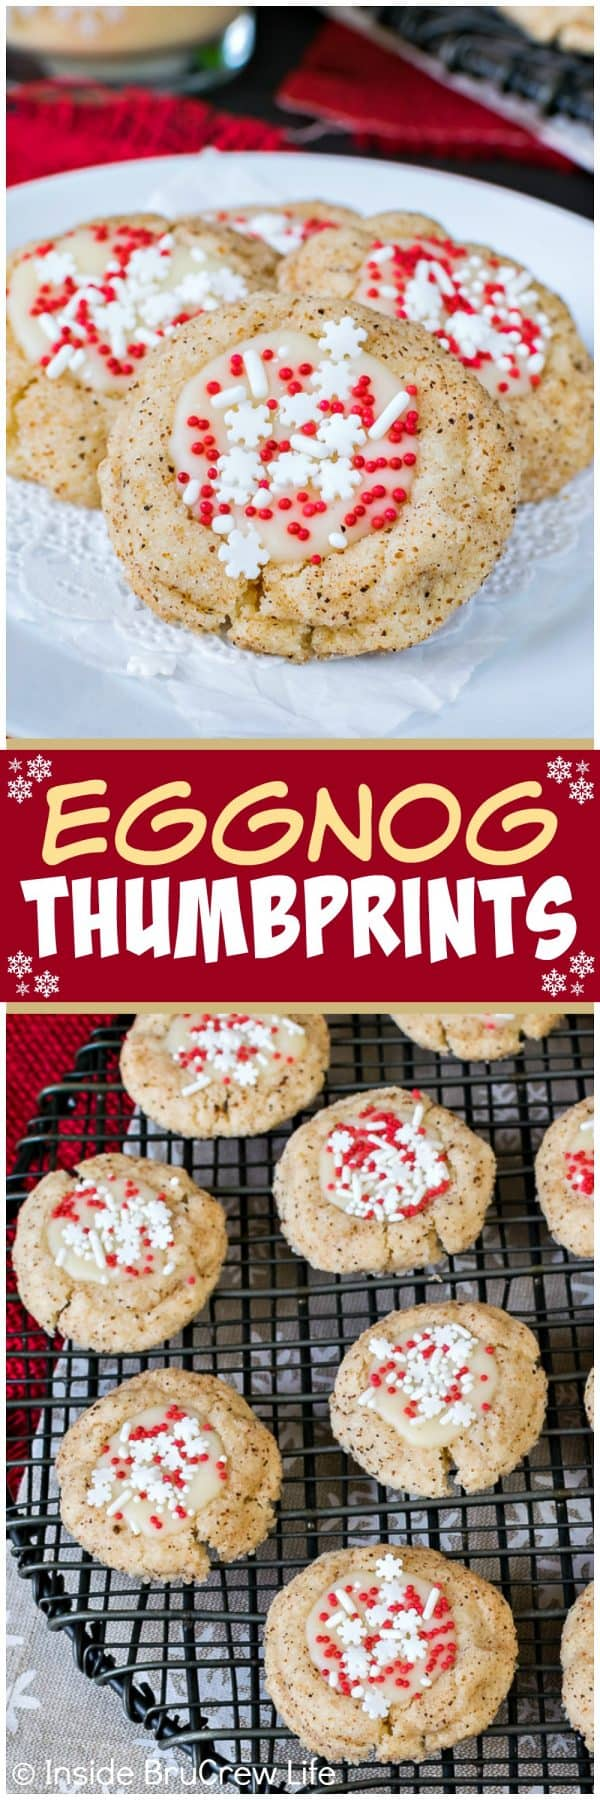 Eggnog Thumbprints - a simple spice cookie filled with eggnog chocolate and sprinkles will add some fun to your cookie trays. Easy recipe for Christmas cookie exchanges!